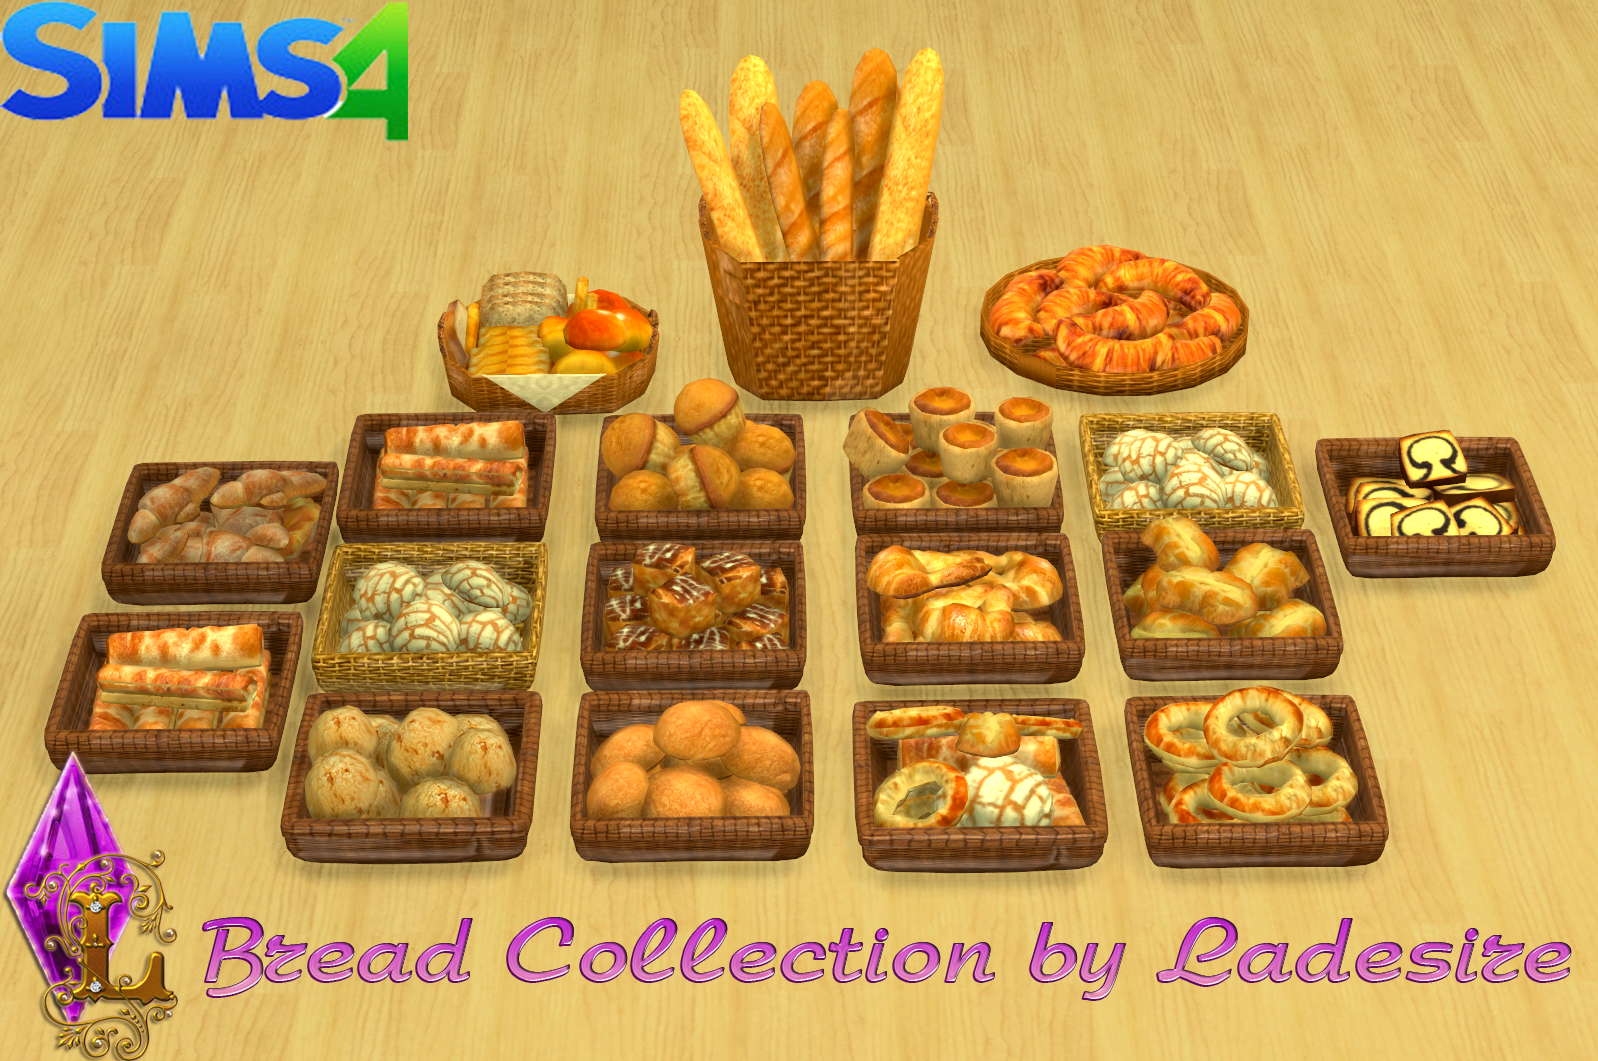 ladesire 39 s creative corner ts4 bread collection by ladesire the sims 4 pinterest m bel. Black Bedroom Furniture Sets. Home Design Ideas